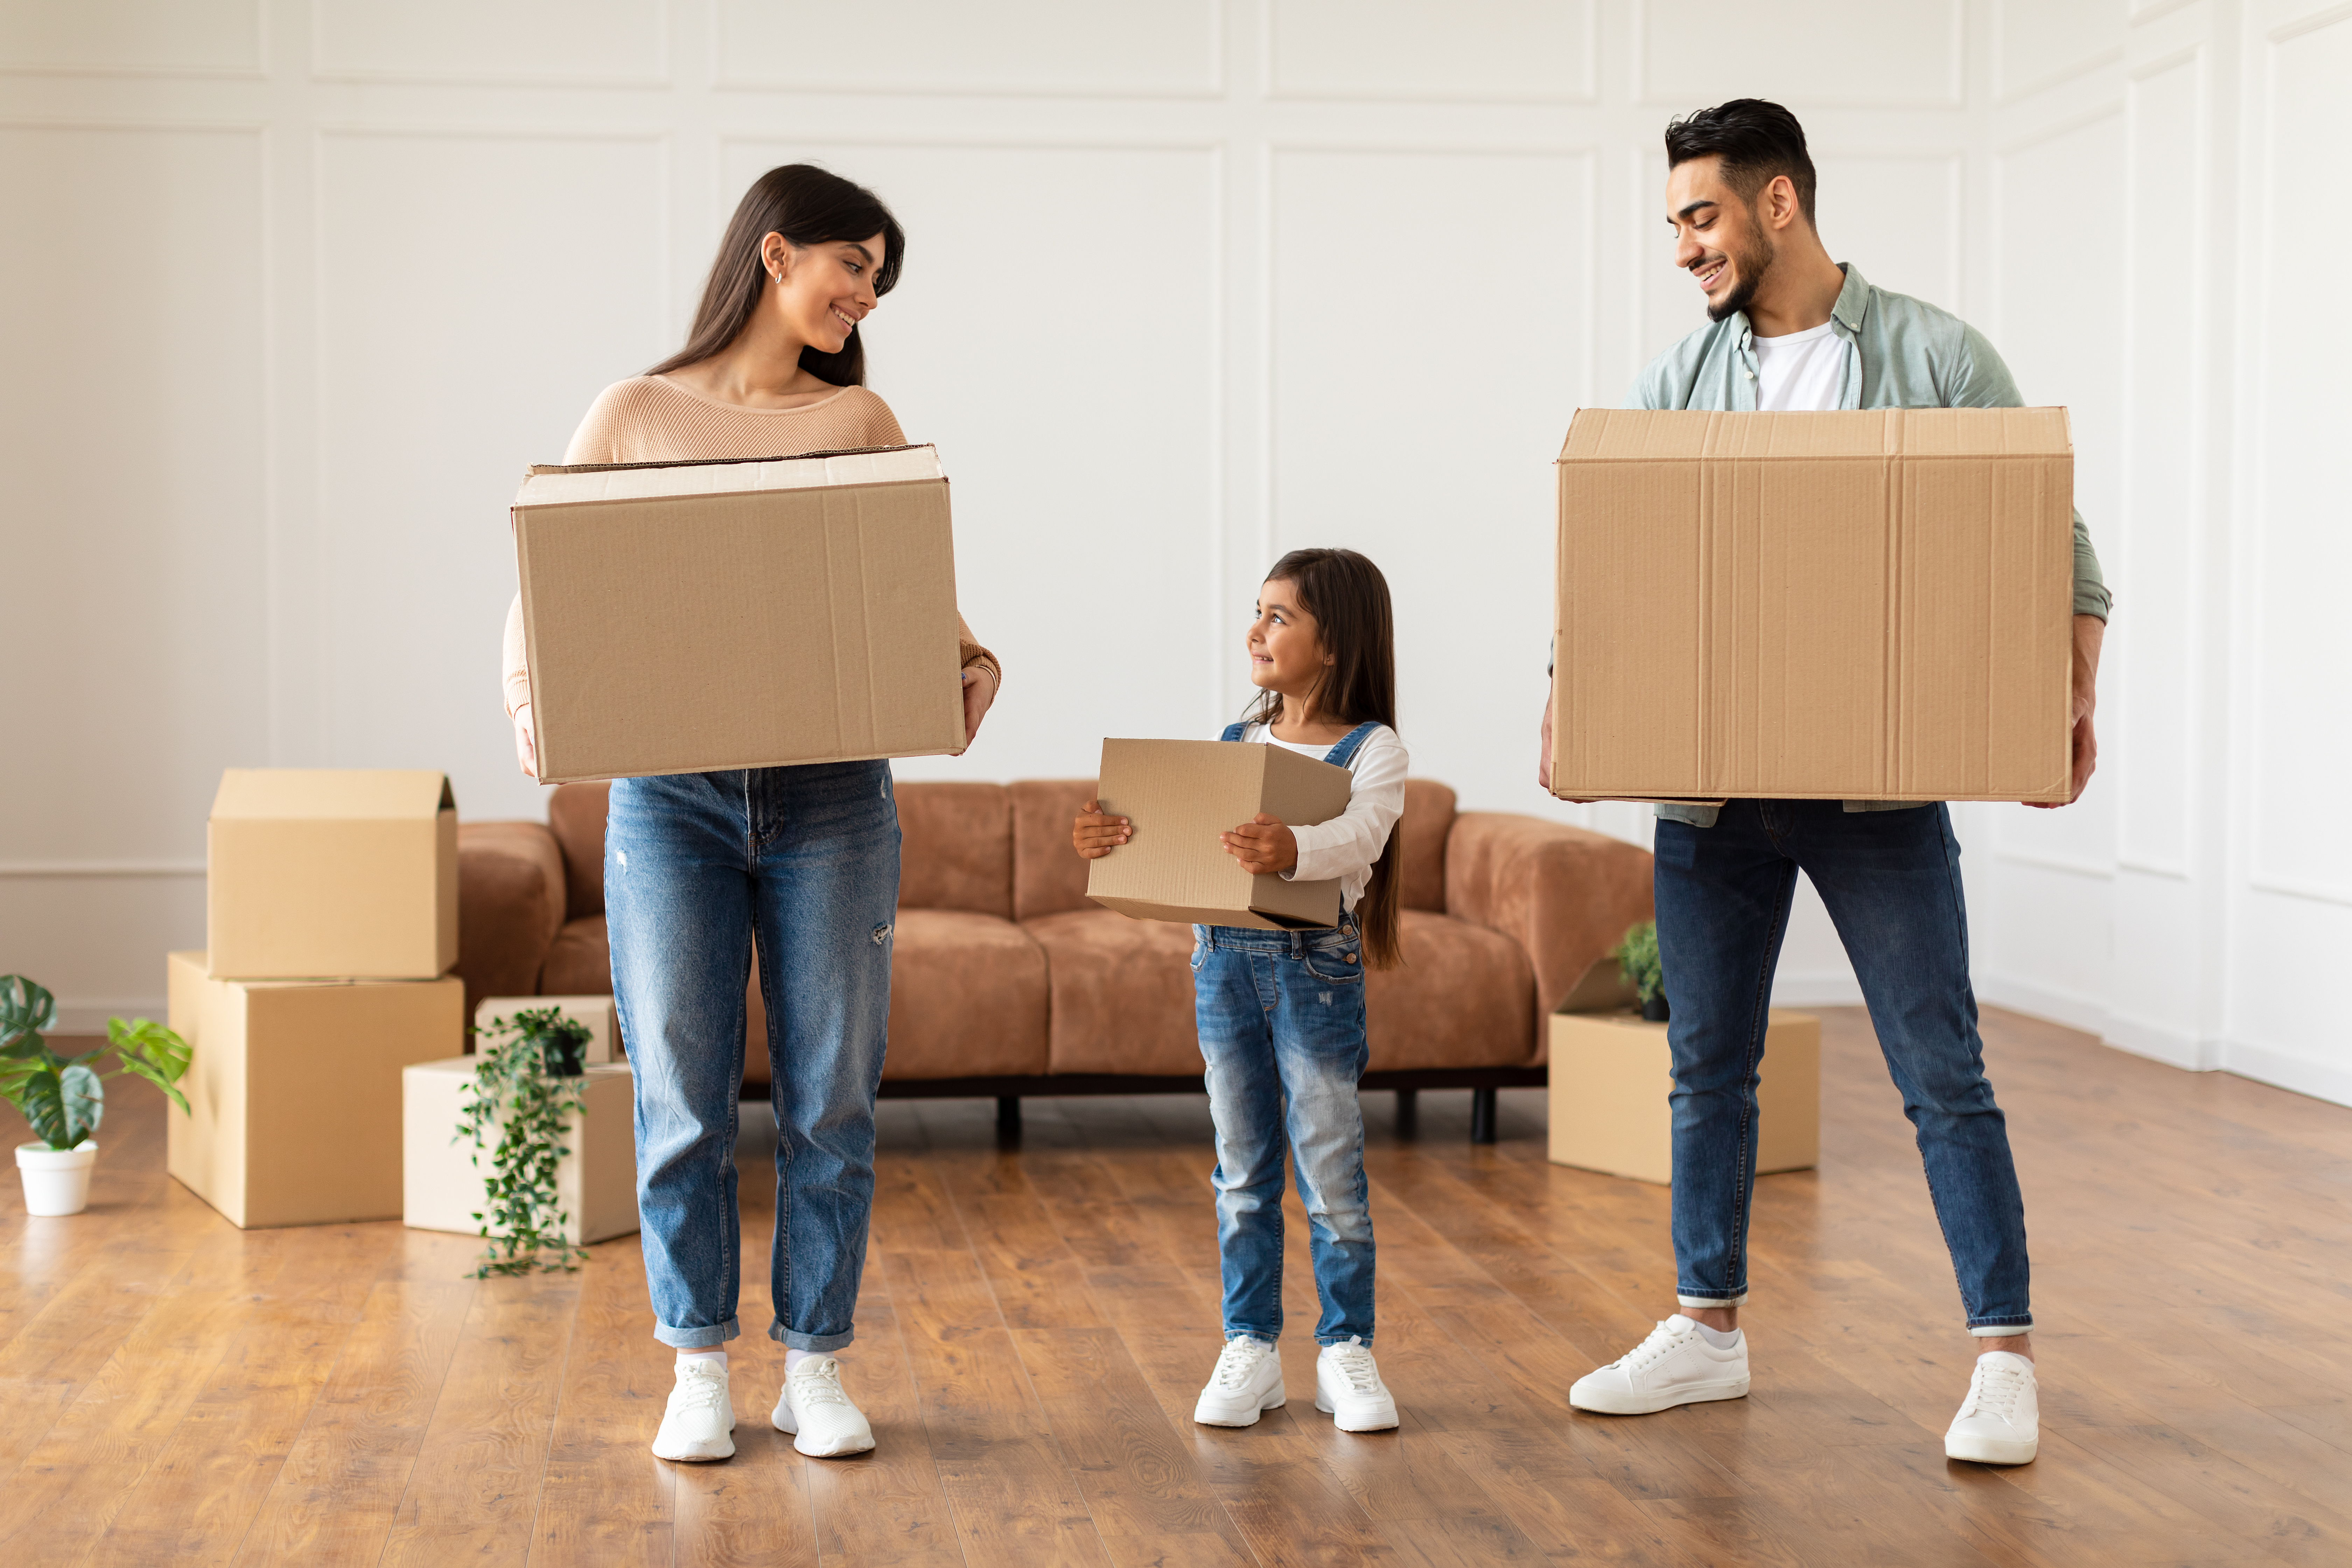 Parents and child holding moving boxes